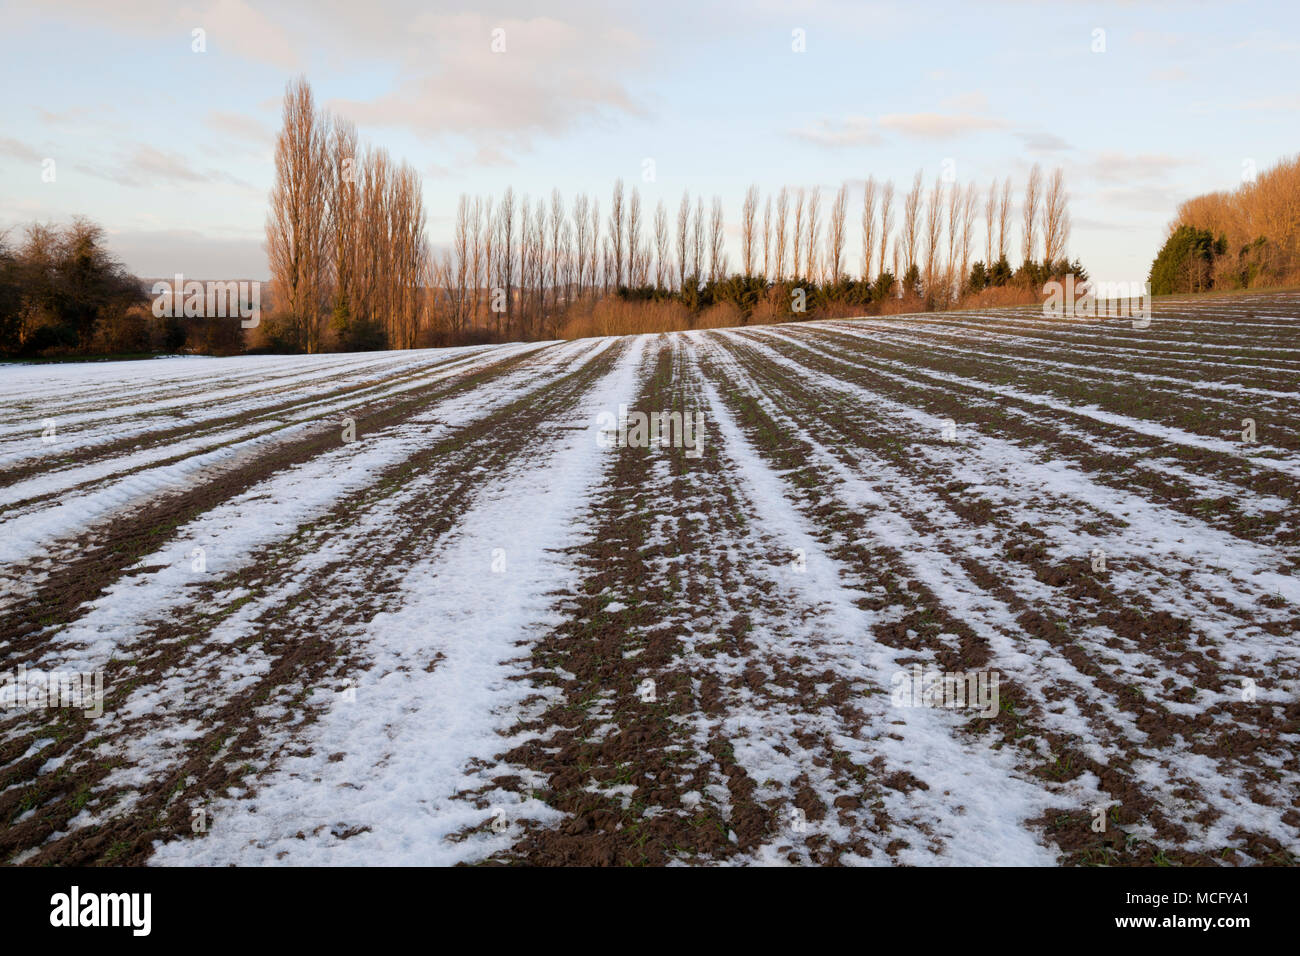 Melting snow in furrows in ploughed field with bare poplar trees in distance, Ebrington, Cotswolds, Gloucestershire, England, United Kingdom, Europe - Stock Image